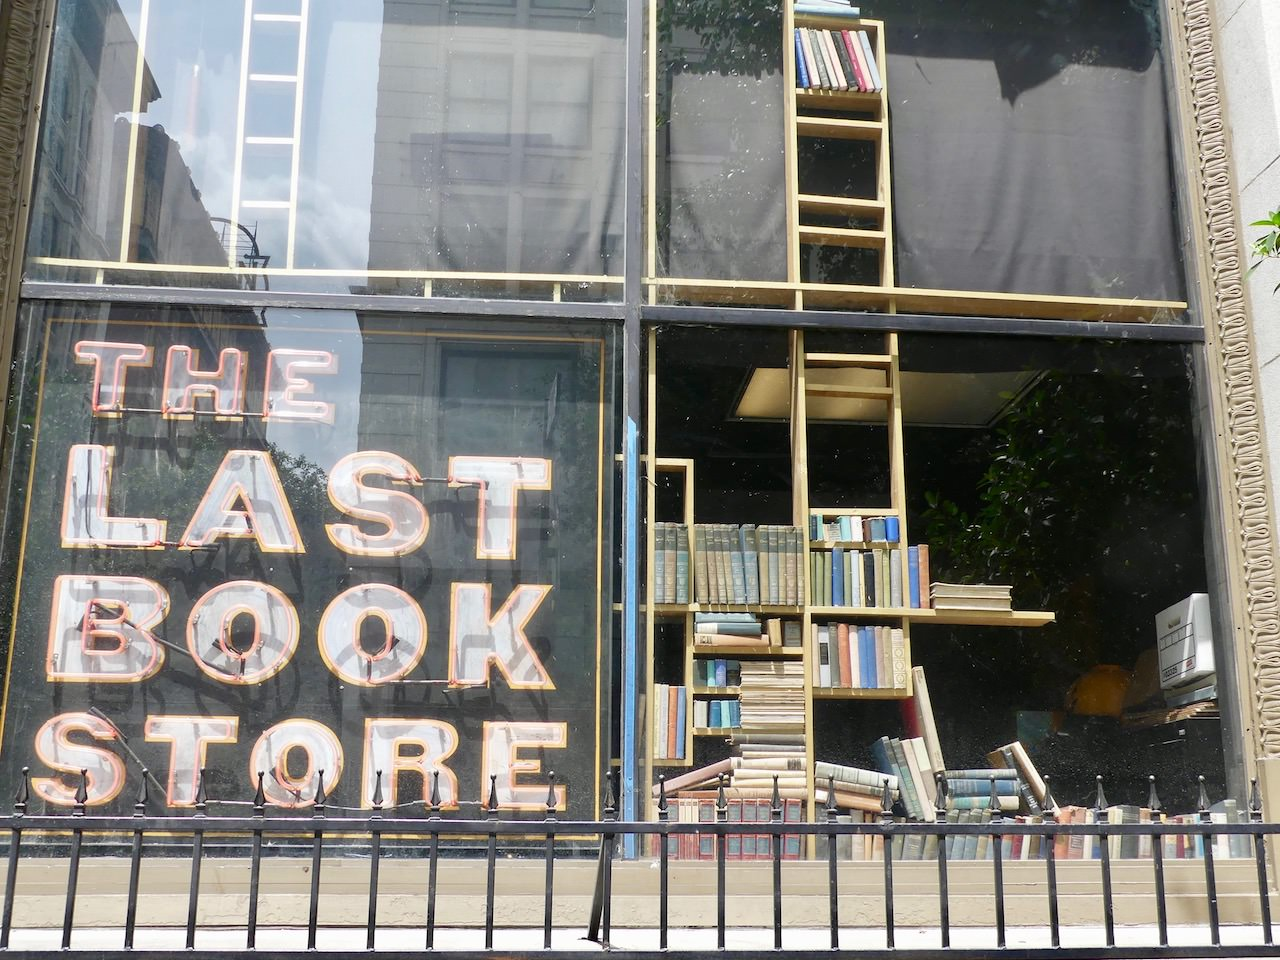 Los Angeles Downtown The Last Book Store